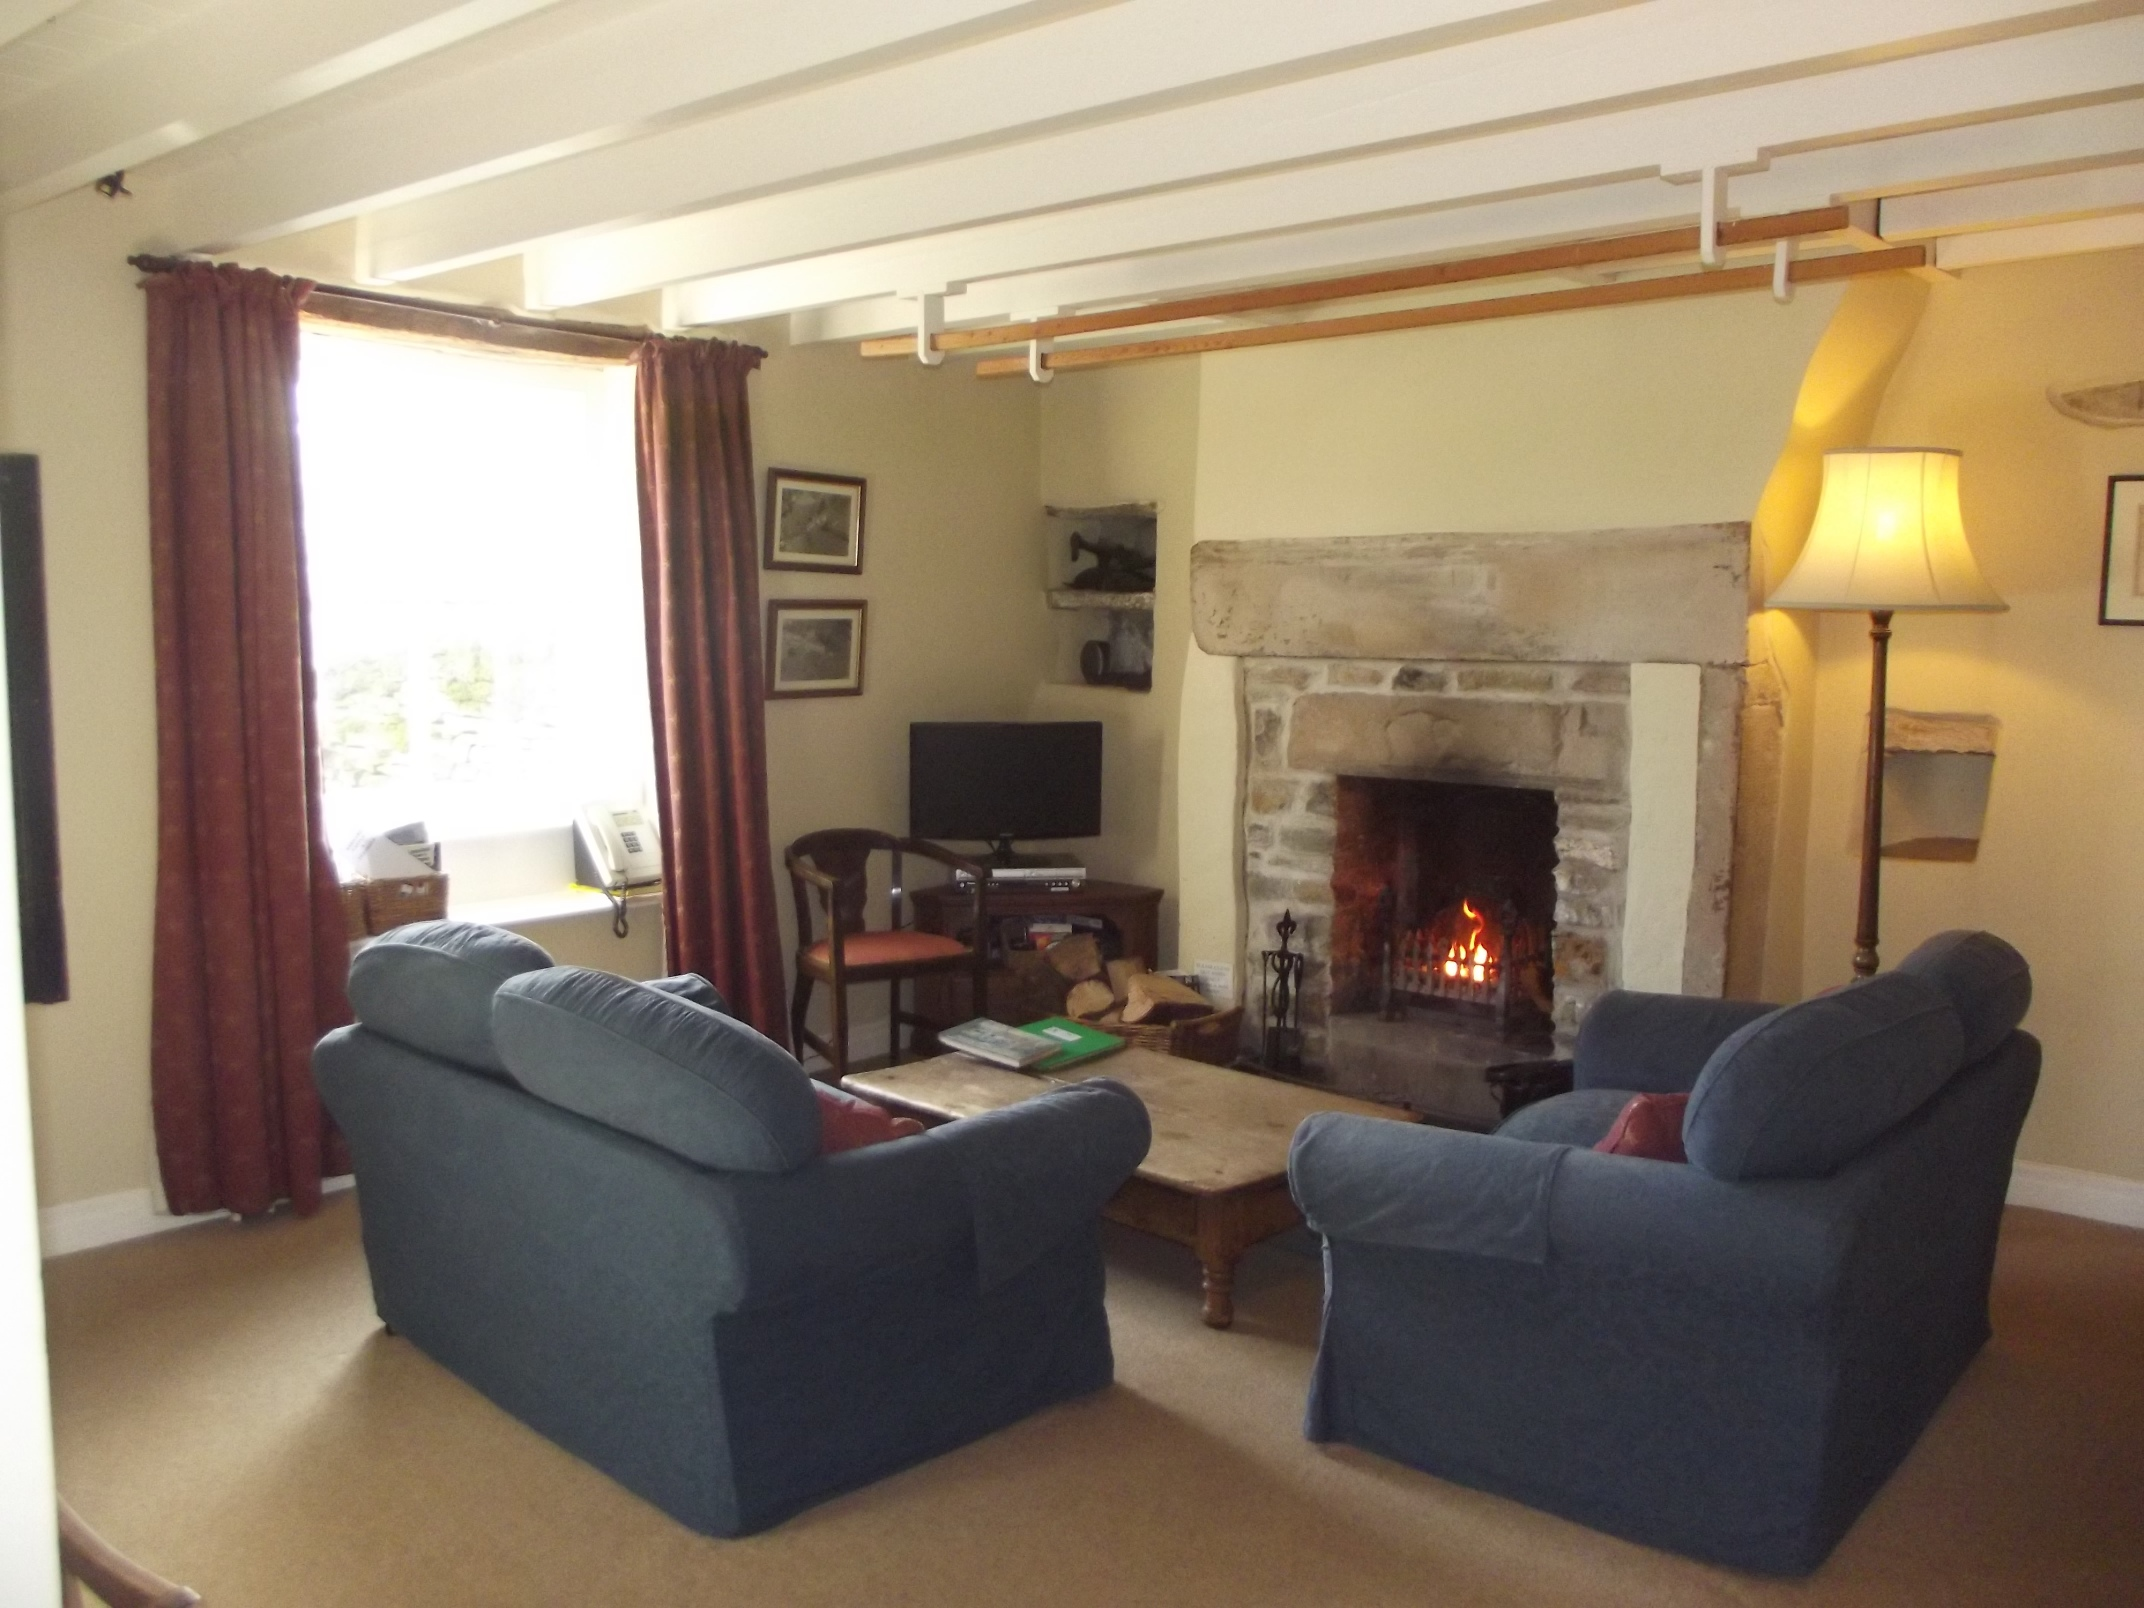 Sitting room at the Yorkshire Cottage